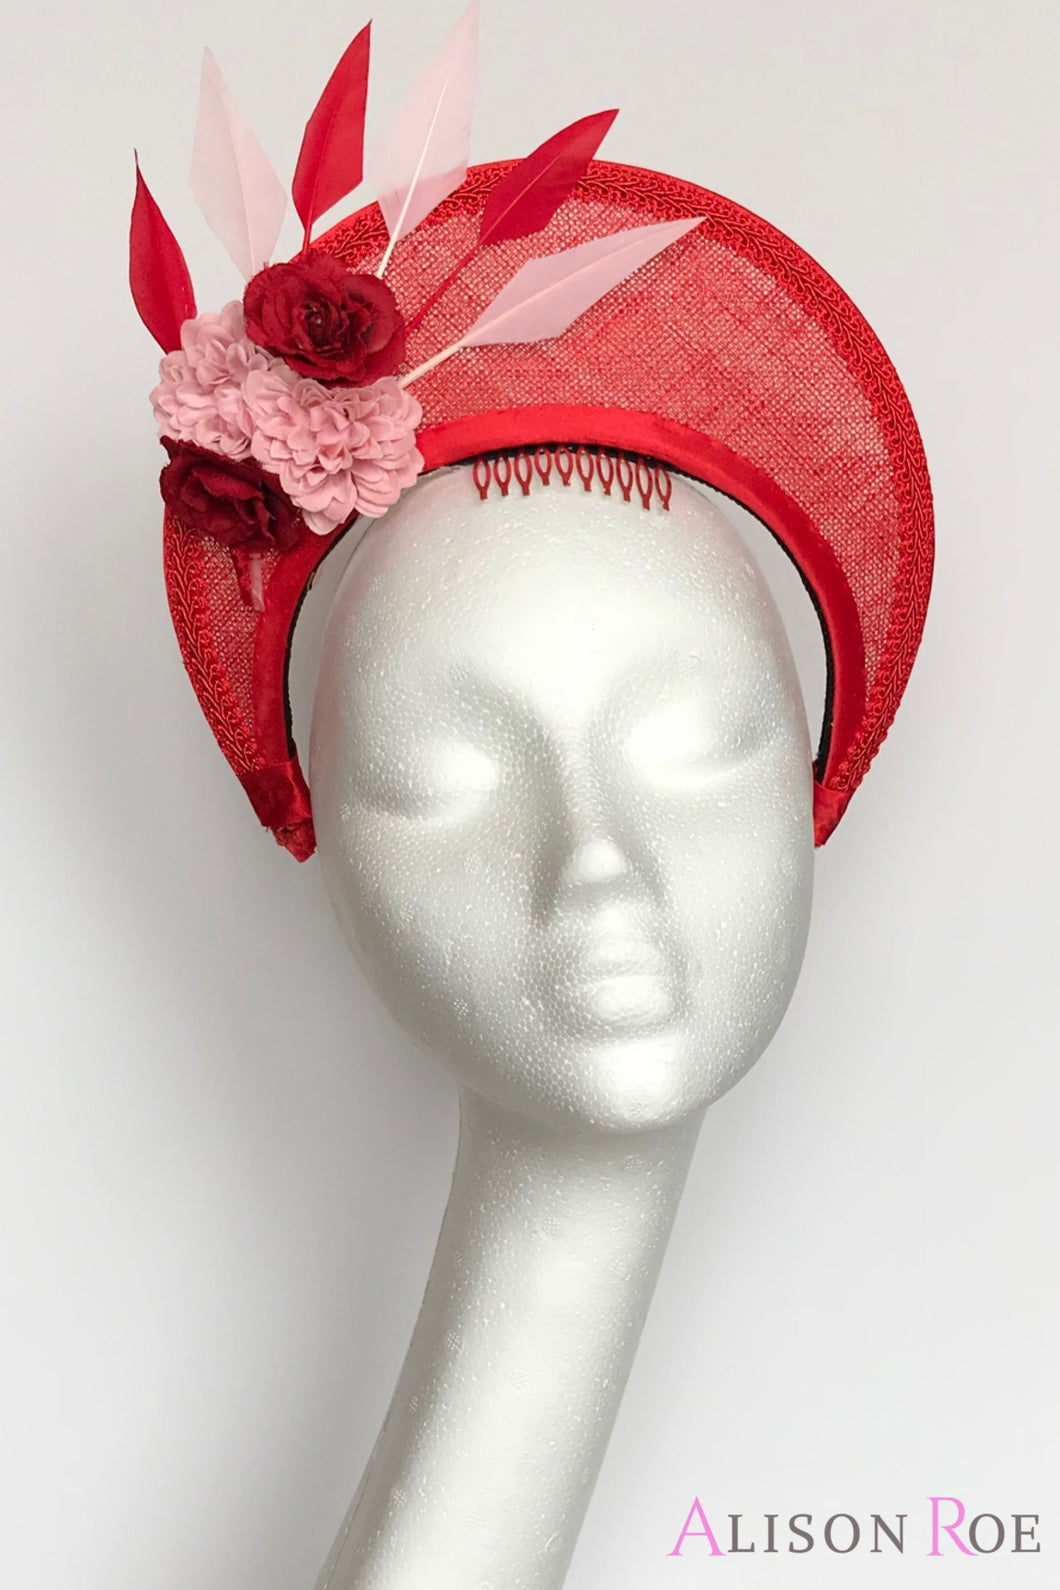 Red and pink crown headpiece to hire